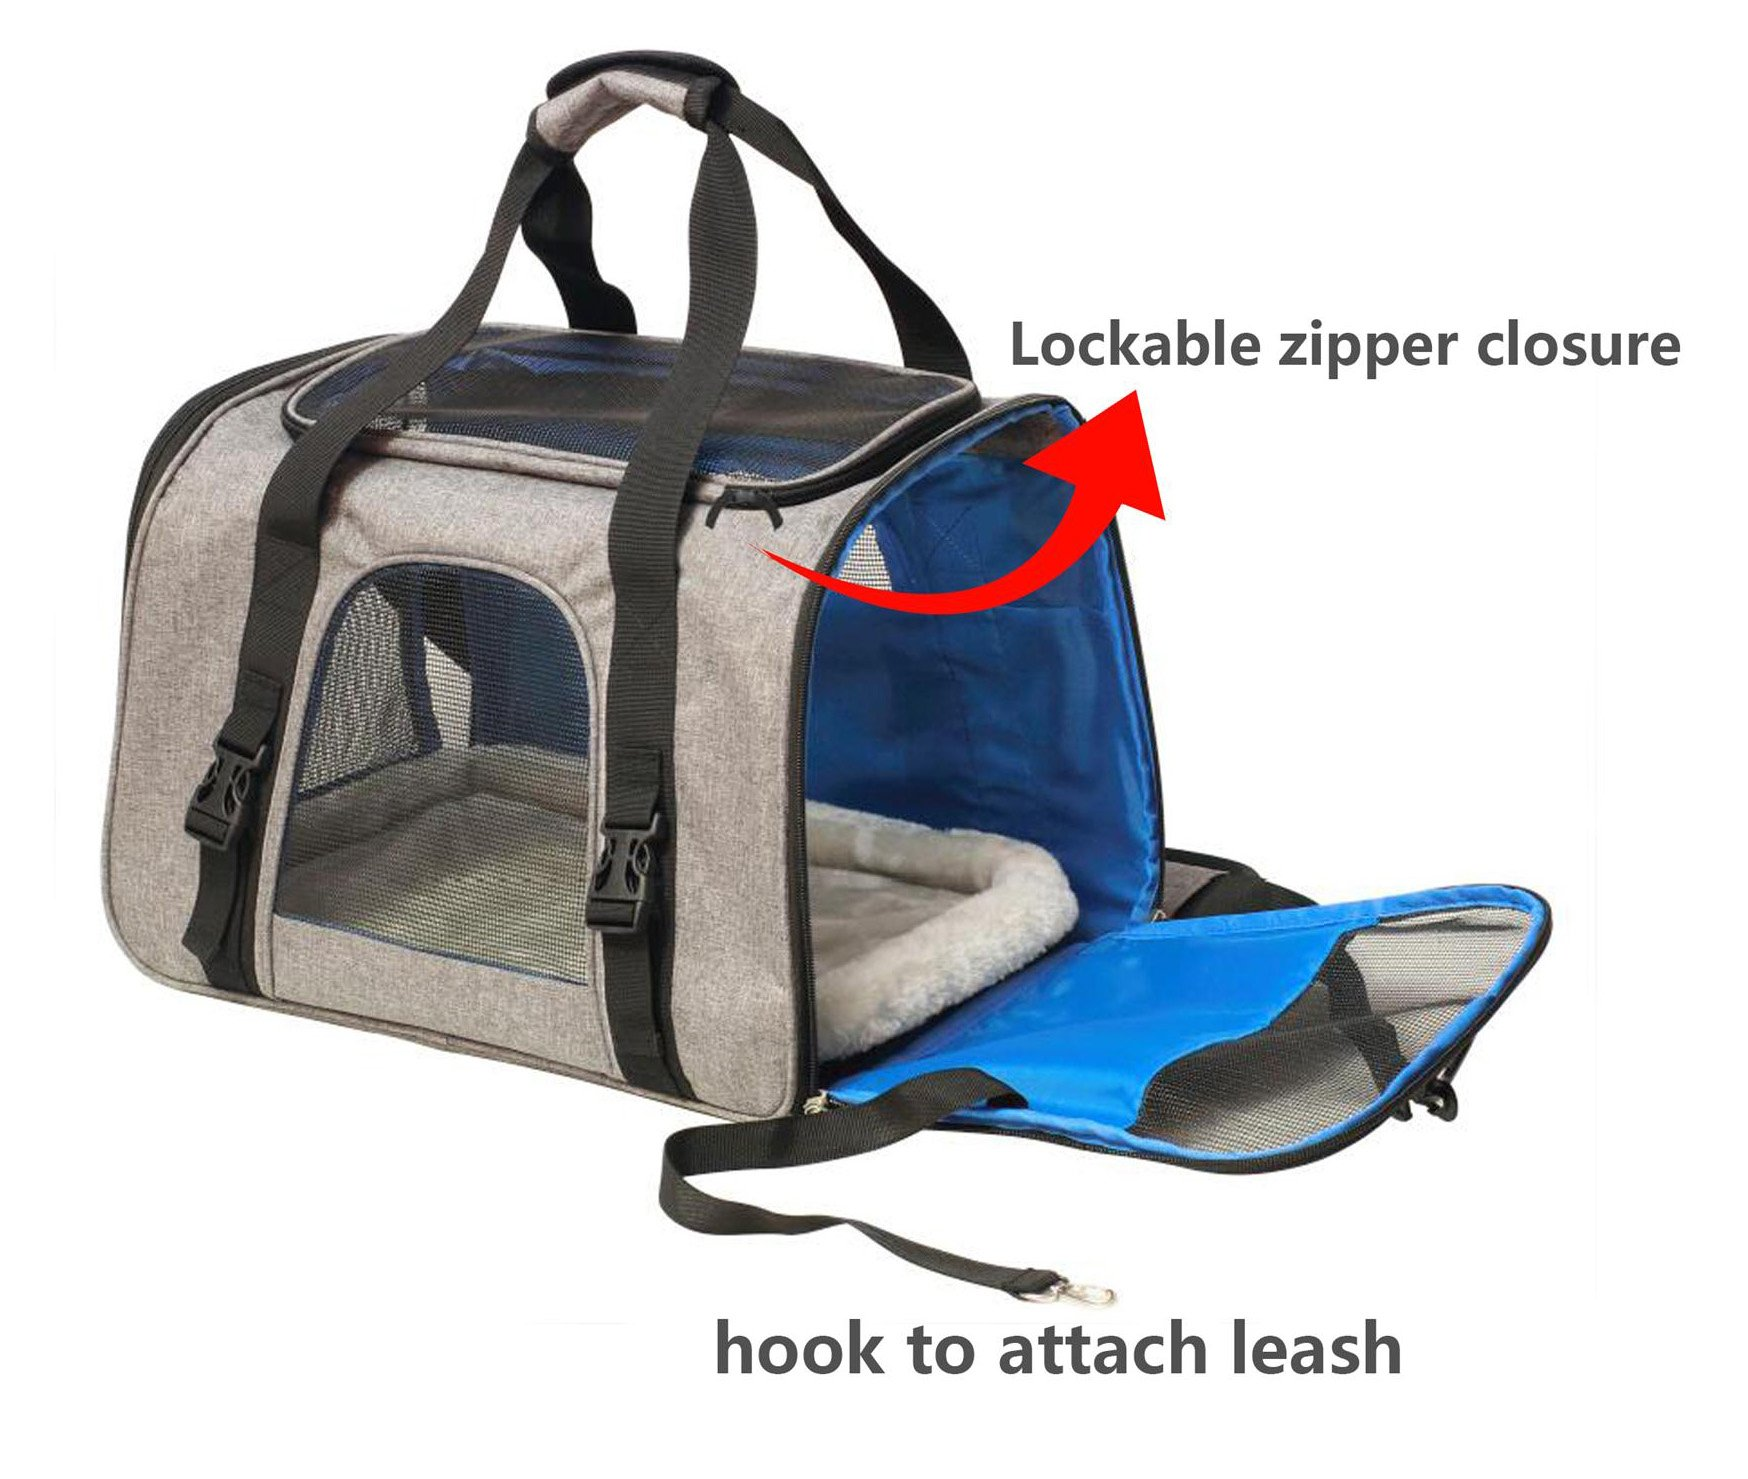 Travel peat dog cat carrier by Eugene's. New Generation of dog carriers Airline Approved Under Seat Compatible. dog cat pet puppy bag carrier for small pets. by Eugene's (Image #1)